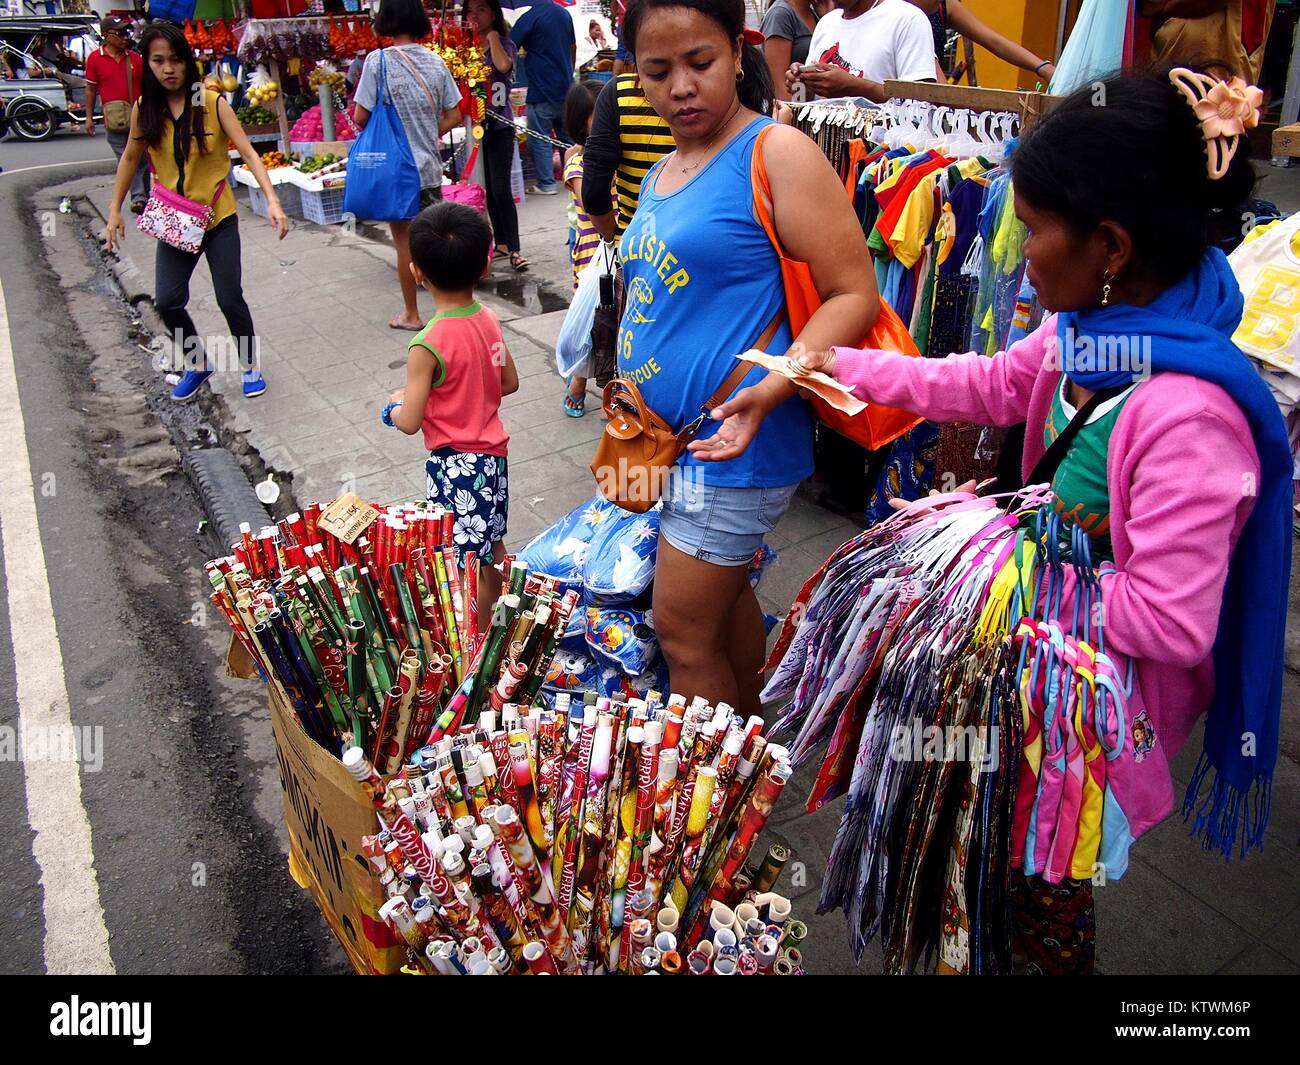 ANTIPOLO CITY, PHILIPPINES - DECEMBER 23, 2017: A street vendor sells christmas gift wrappers at a sidewalk. - Stock Image